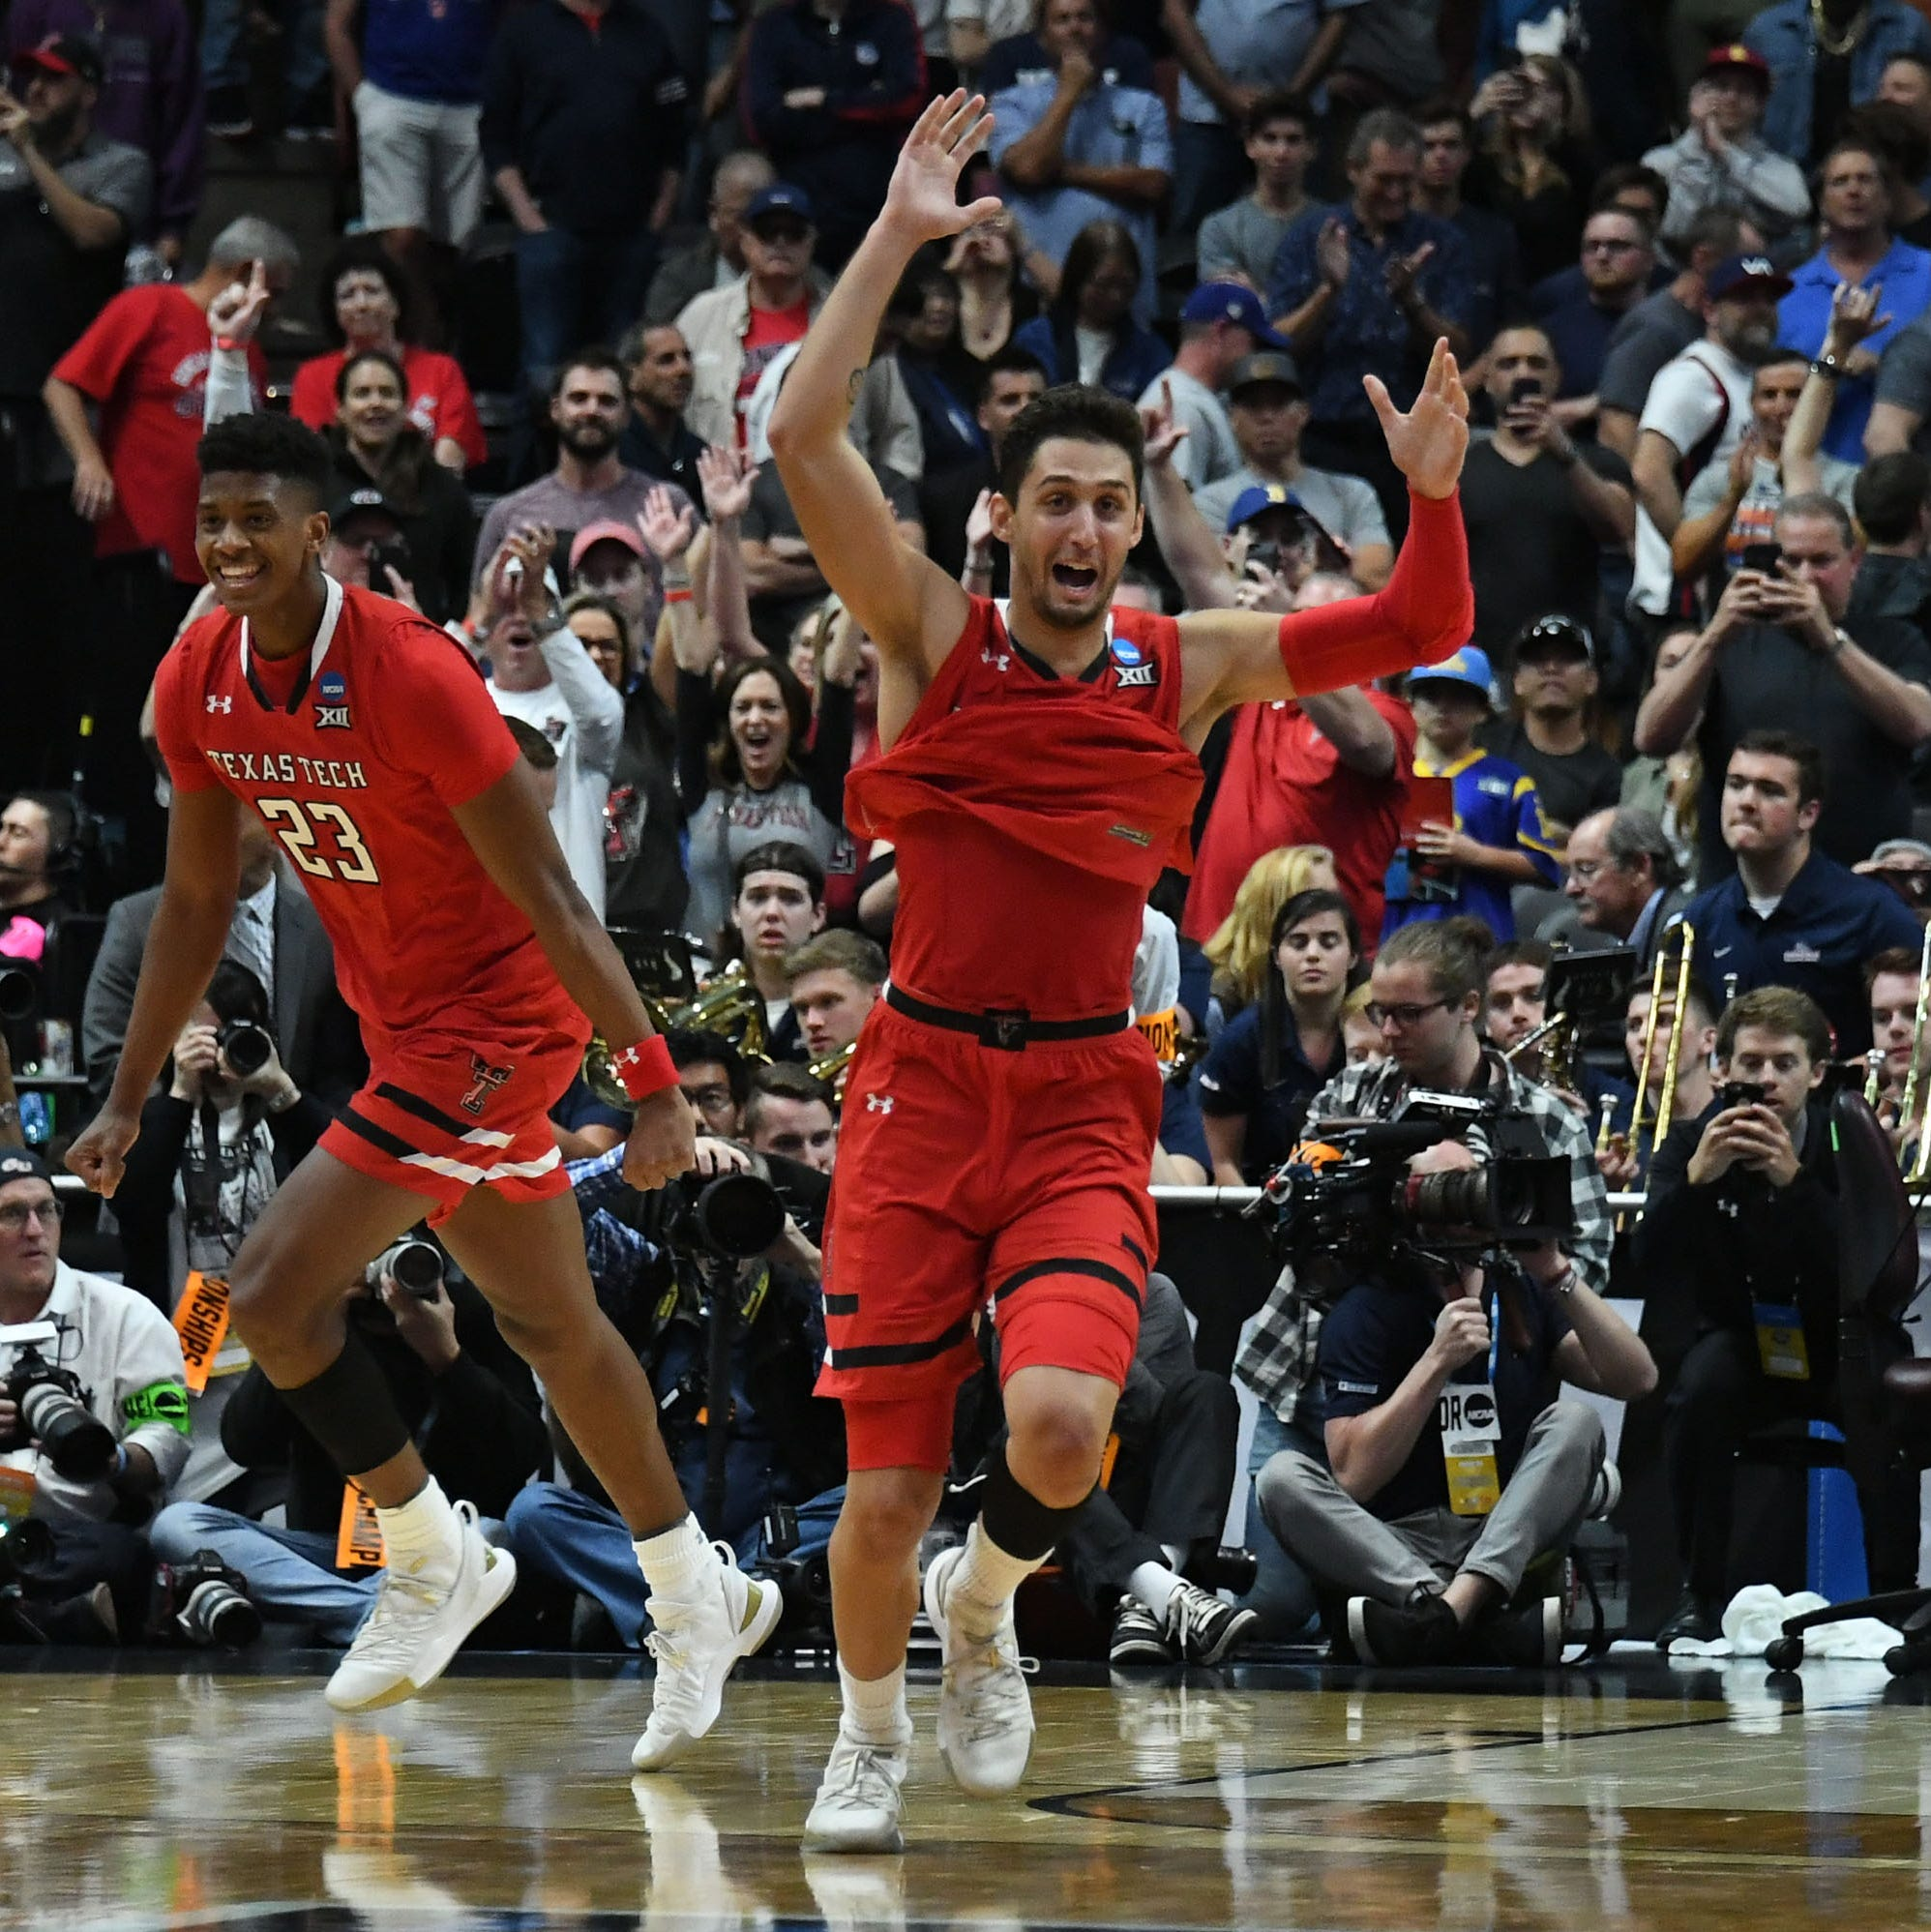 Final Four 2019: How to watch Texas Tech vs. Michigan State basketball on TV, live stream